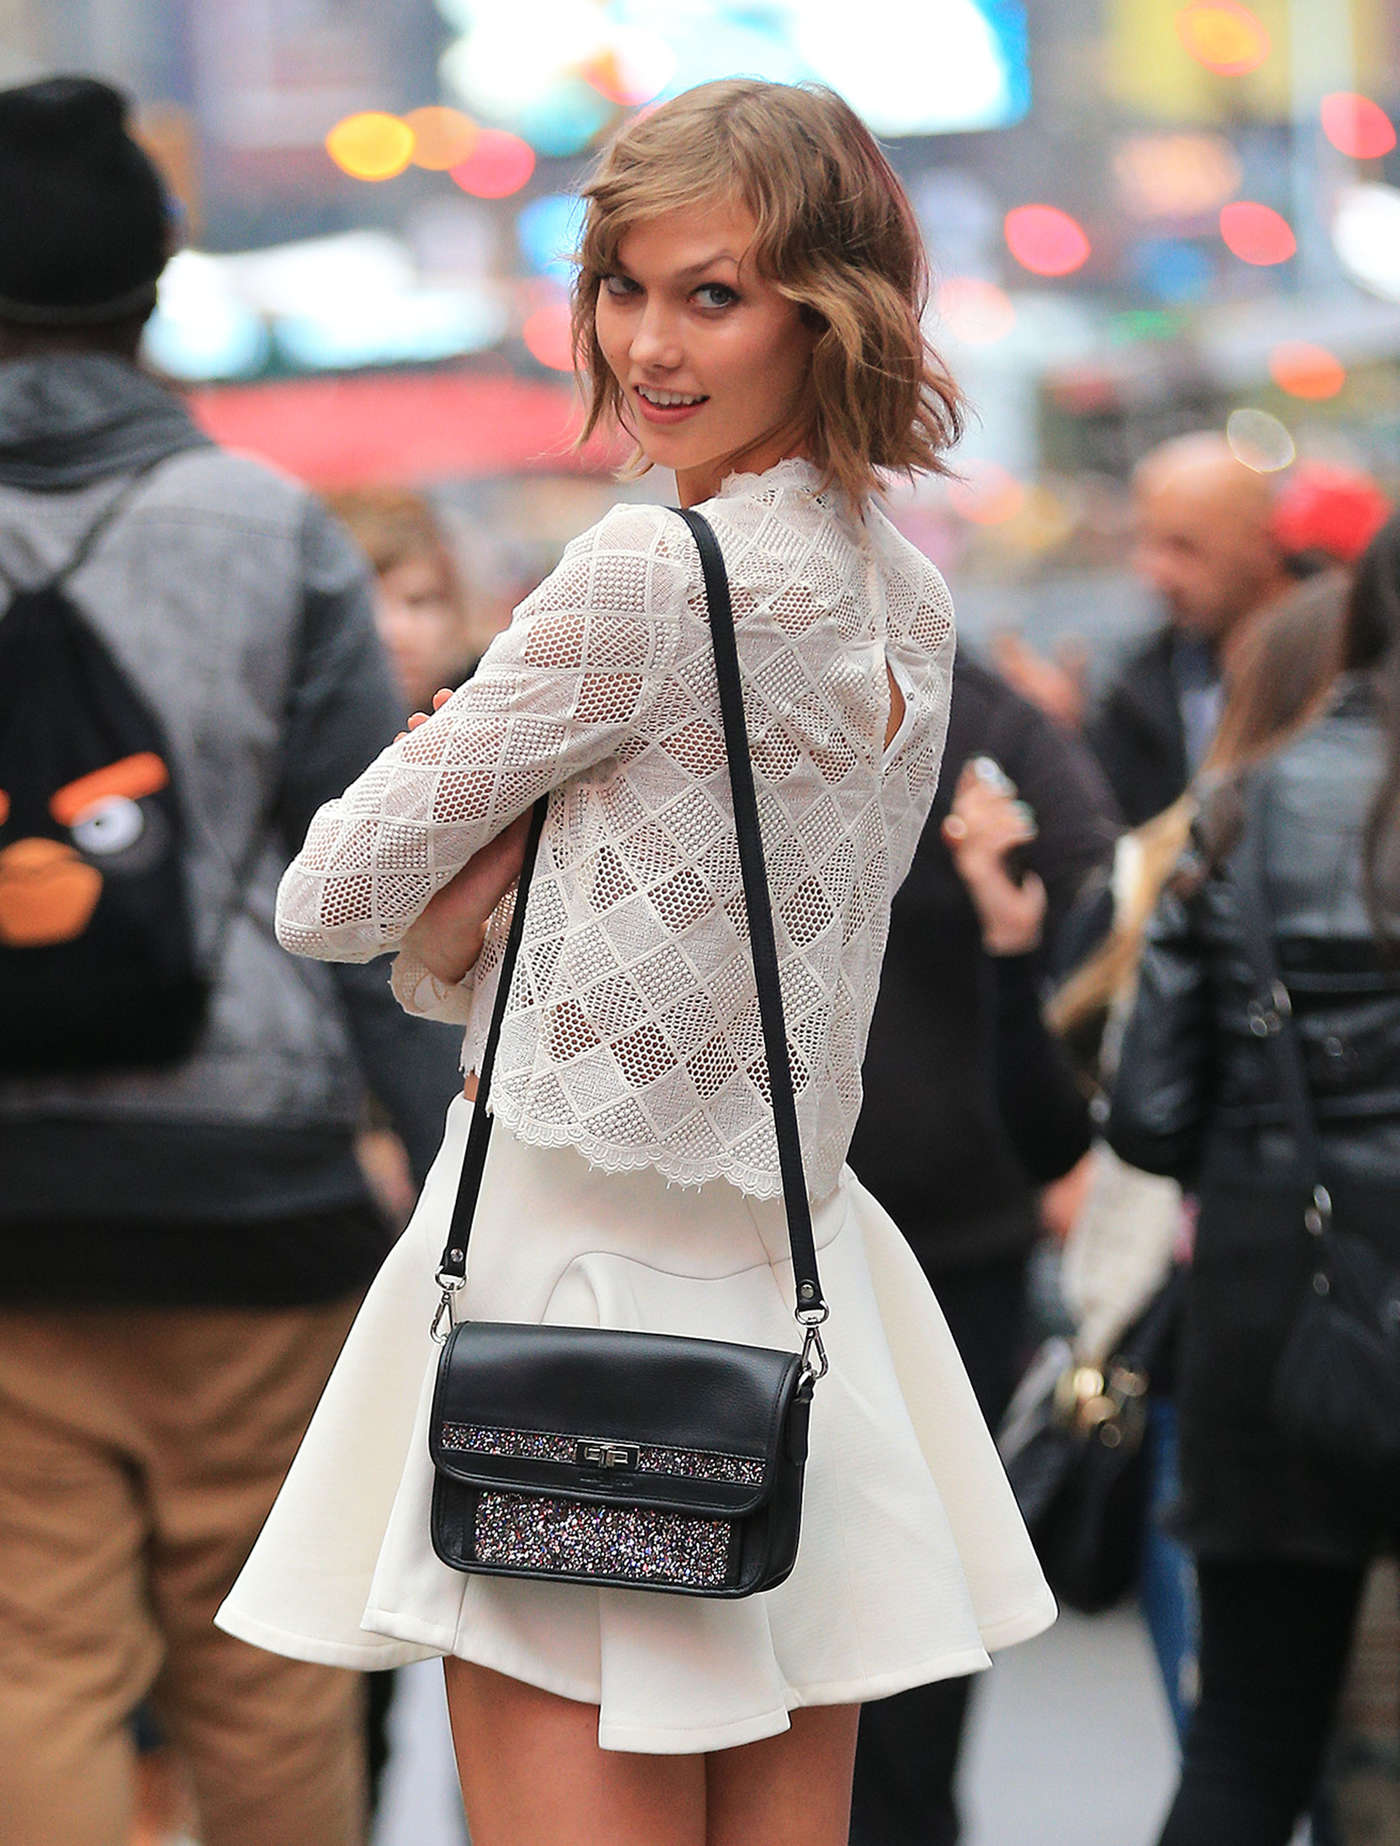 Karlie Kloss Street Style In New York City Via